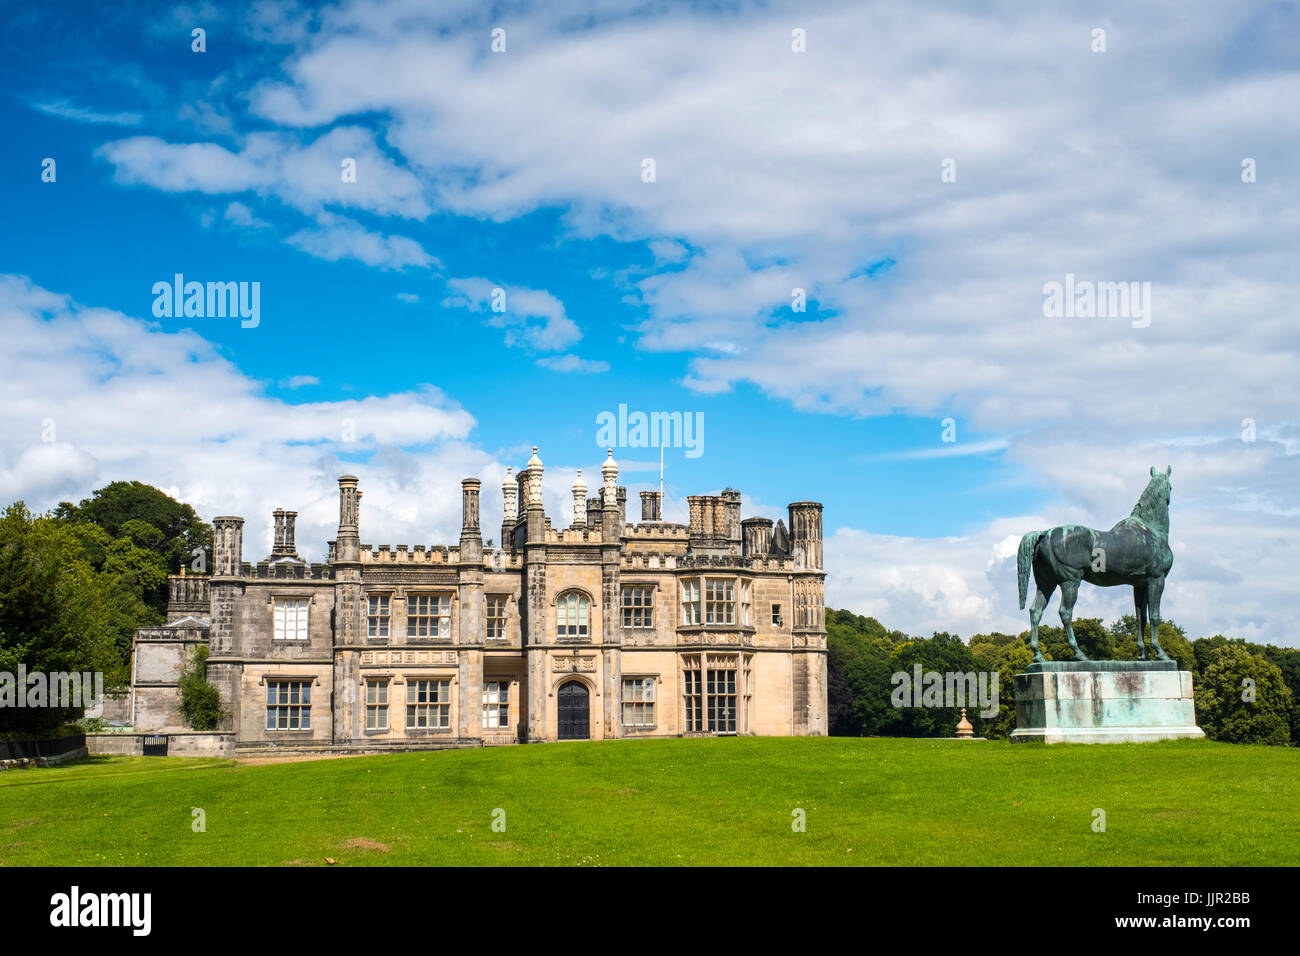 Exterior view of Dalmeny House stately home outside Edinburgh in Scotland, United Kingdom - Stock Image